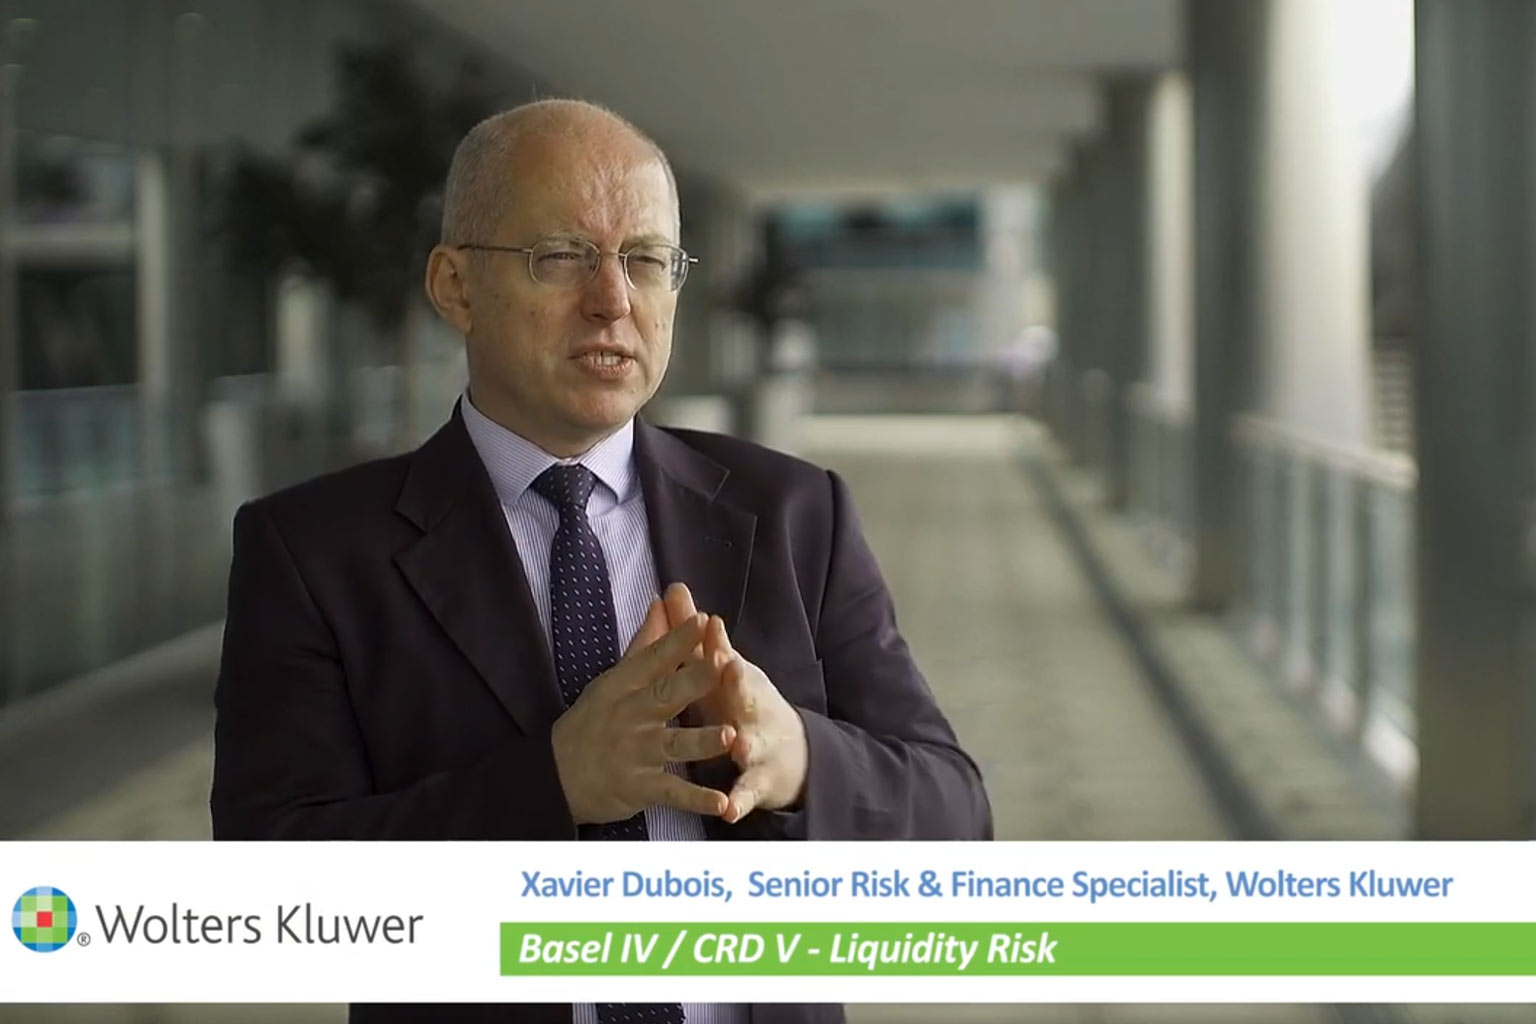 Bsel IV Liquidity Risk Video